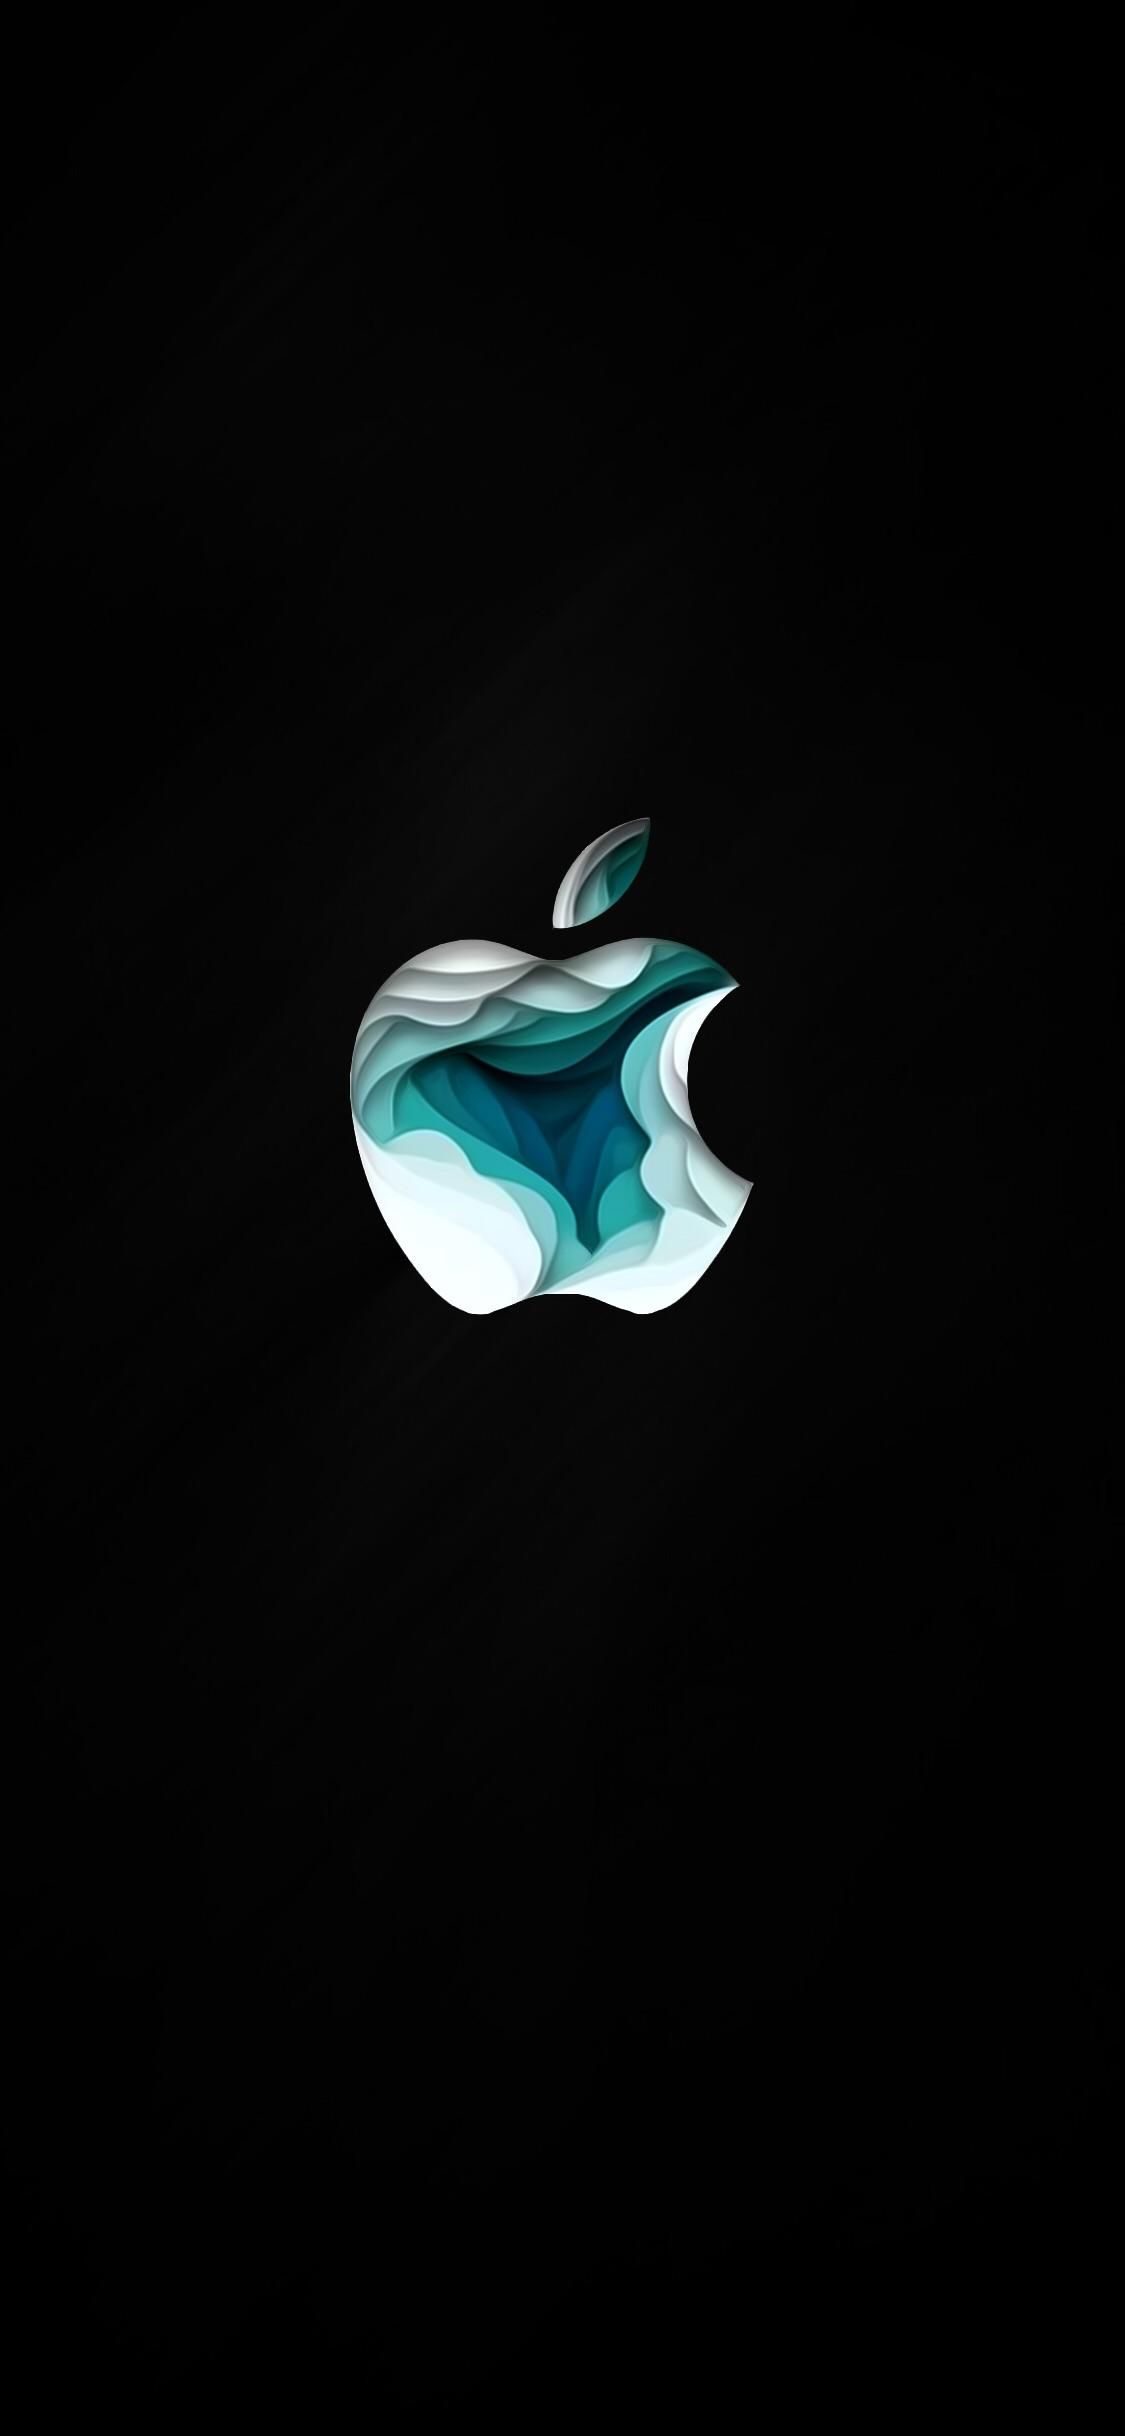 Apple Special Event Logo True Black With Images Apple Logo